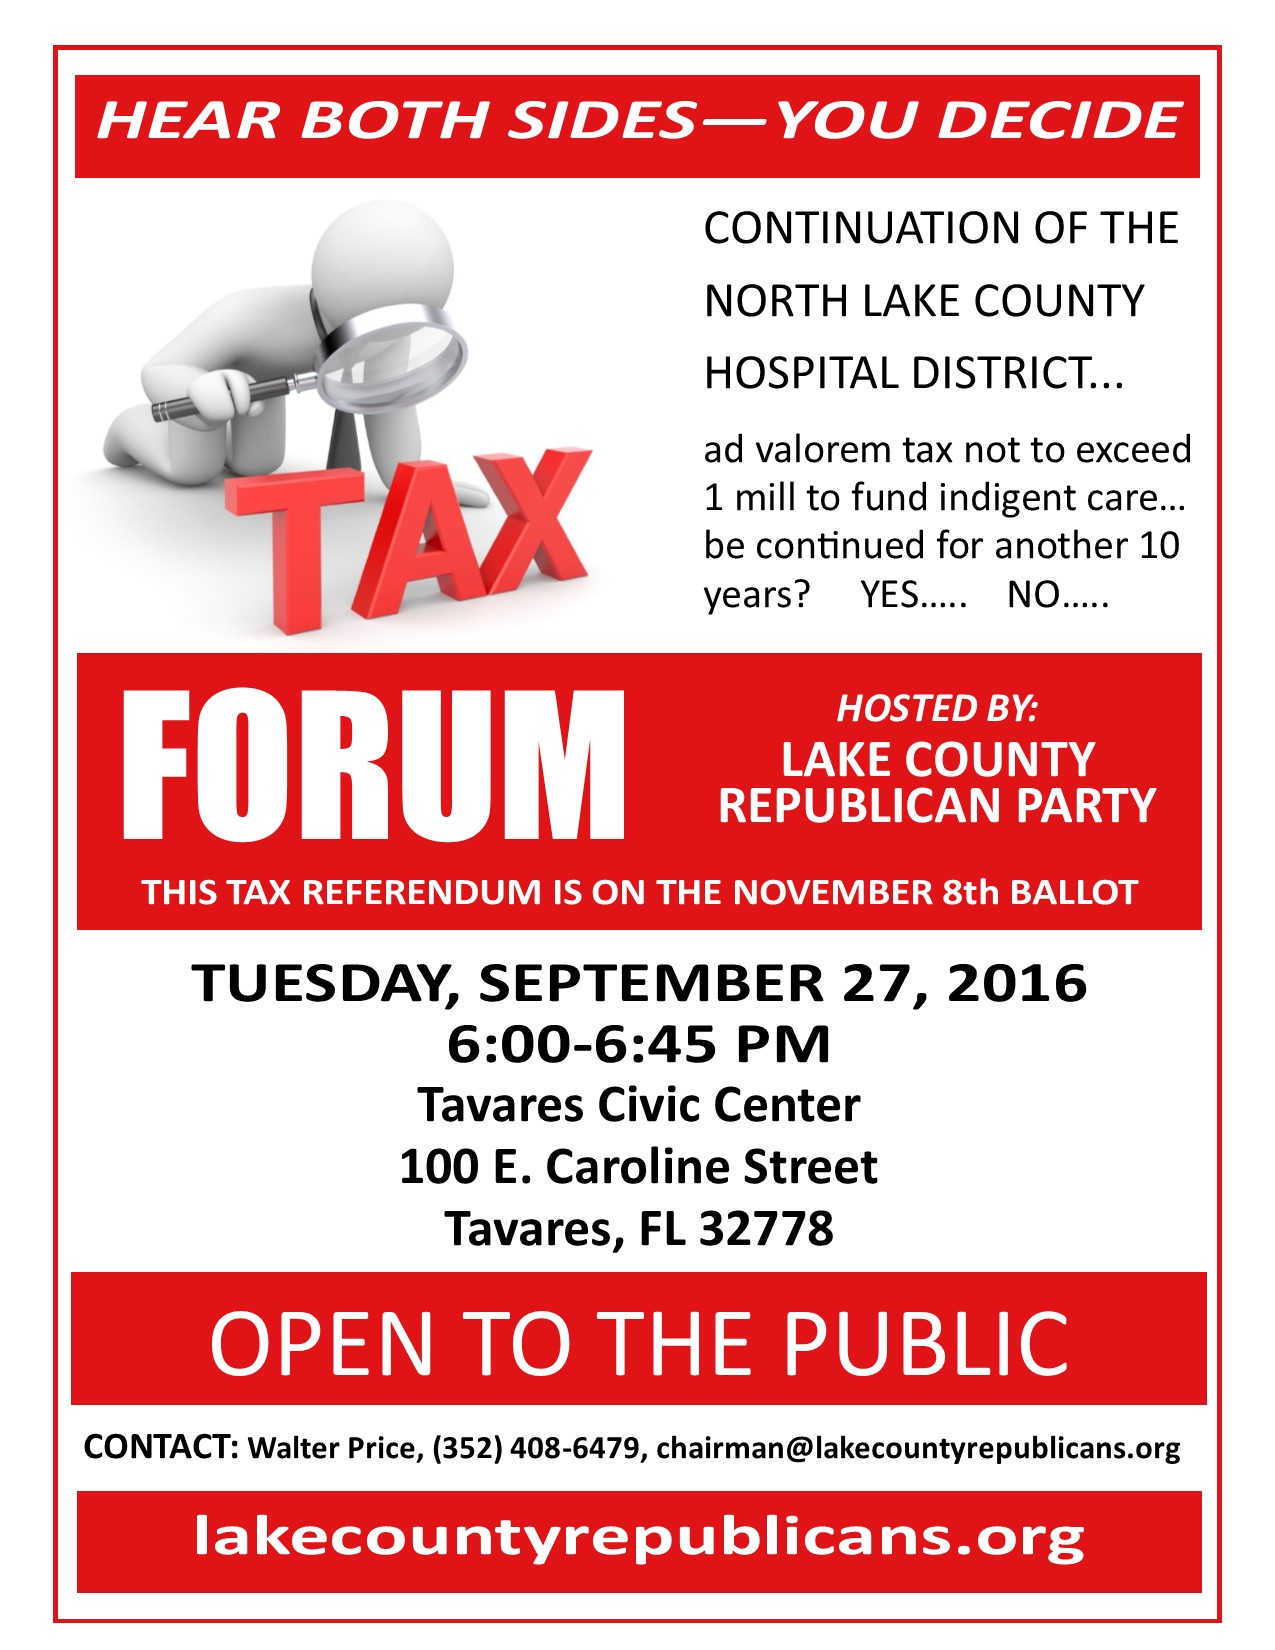 NLCHD_TAX_FORUM_FLYER_20160927.jpg